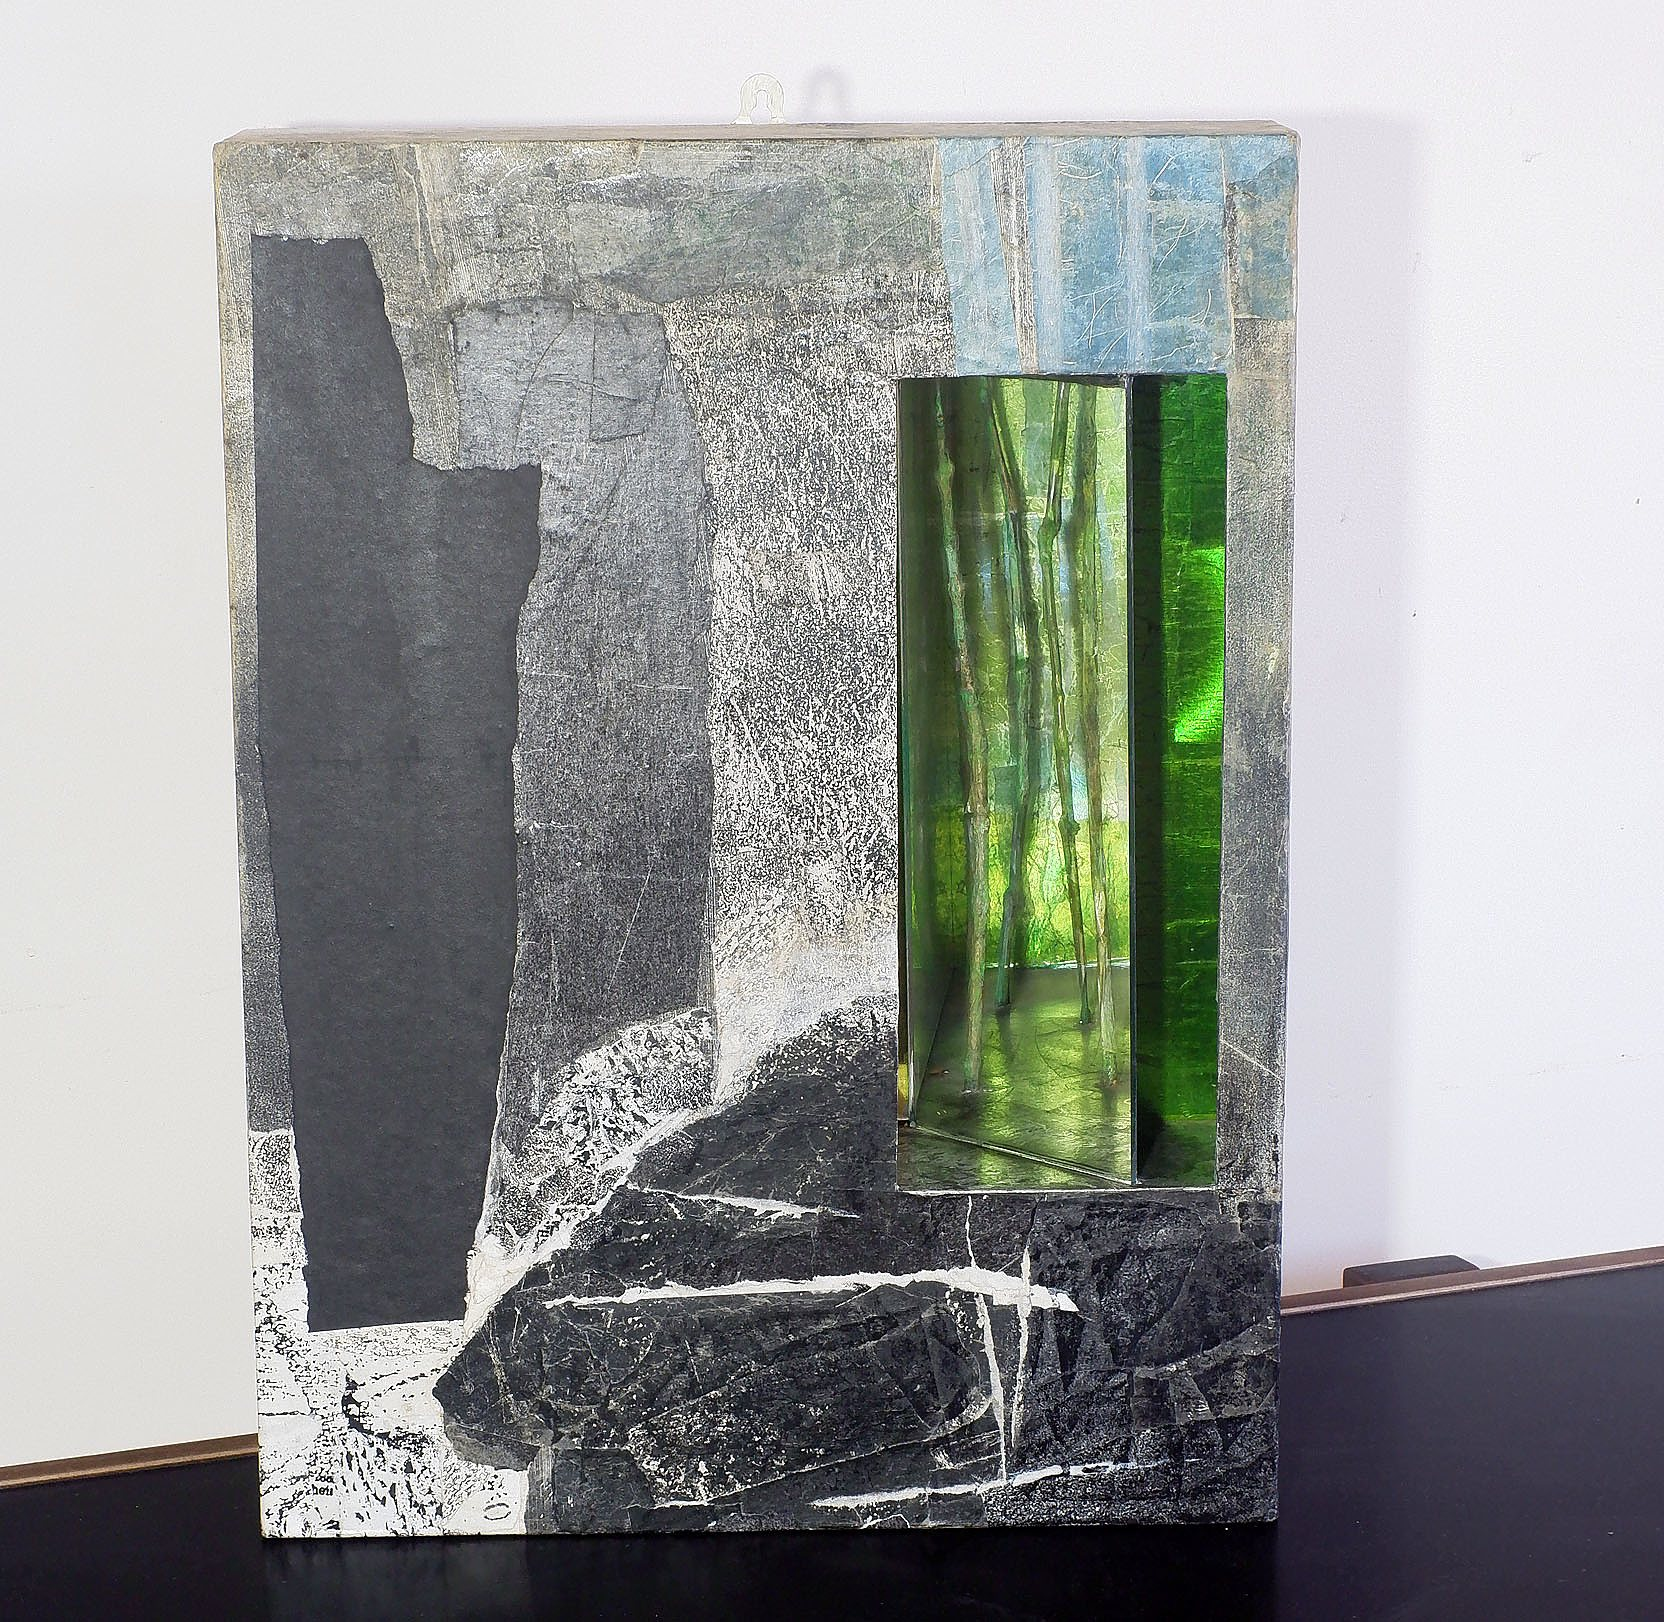 'Mary Husted, Passing Through The Middle 1996, Assemblage'